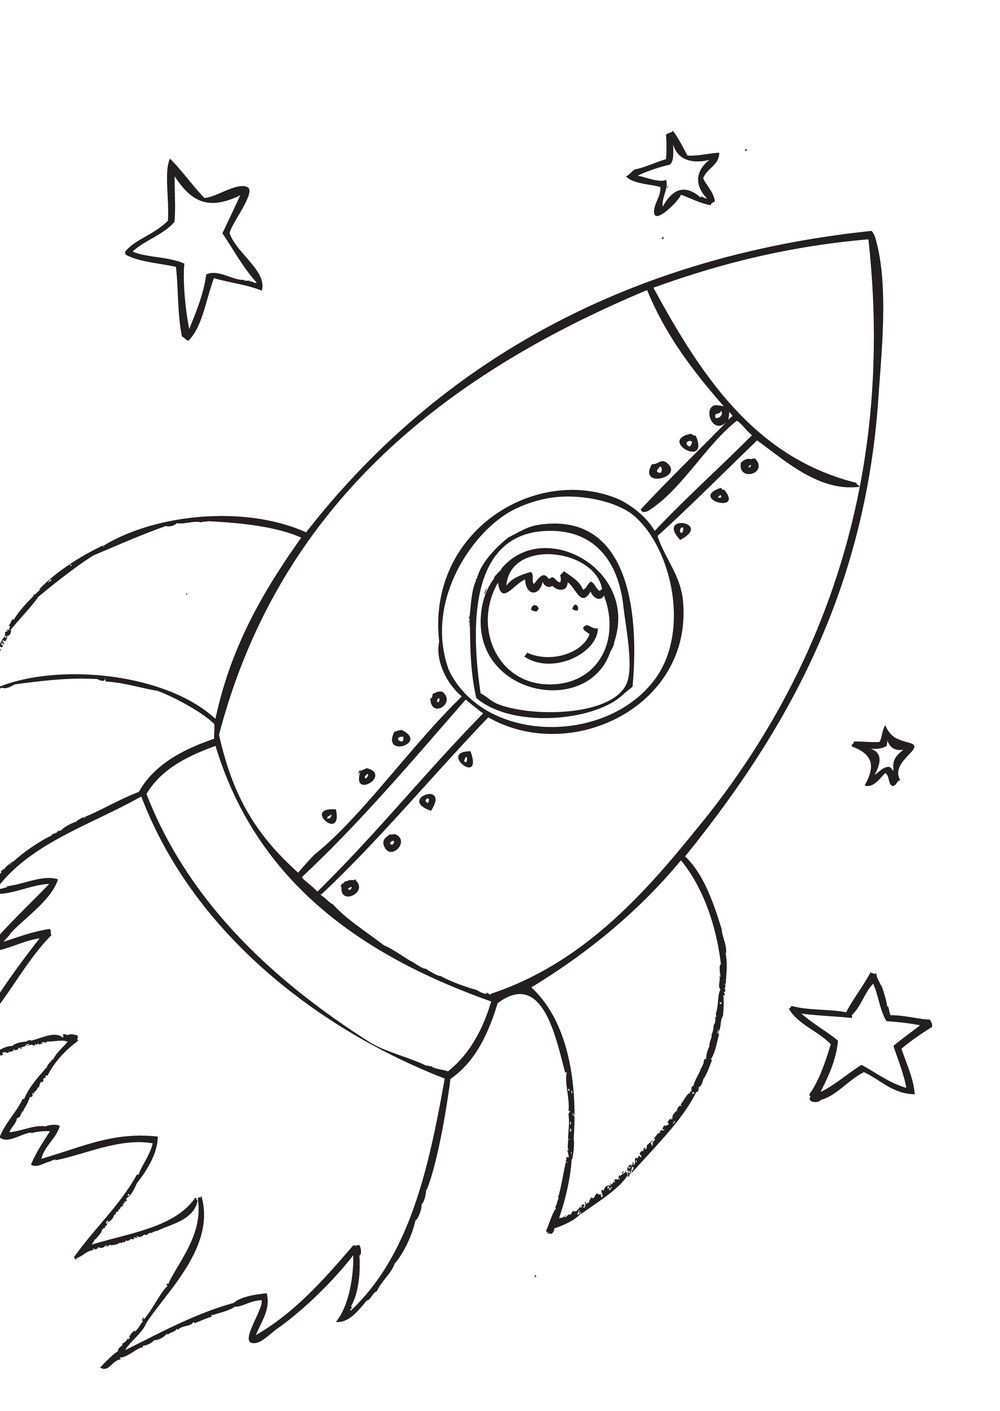 rocket drawings drawing of a rocket clipart best rocket drawings